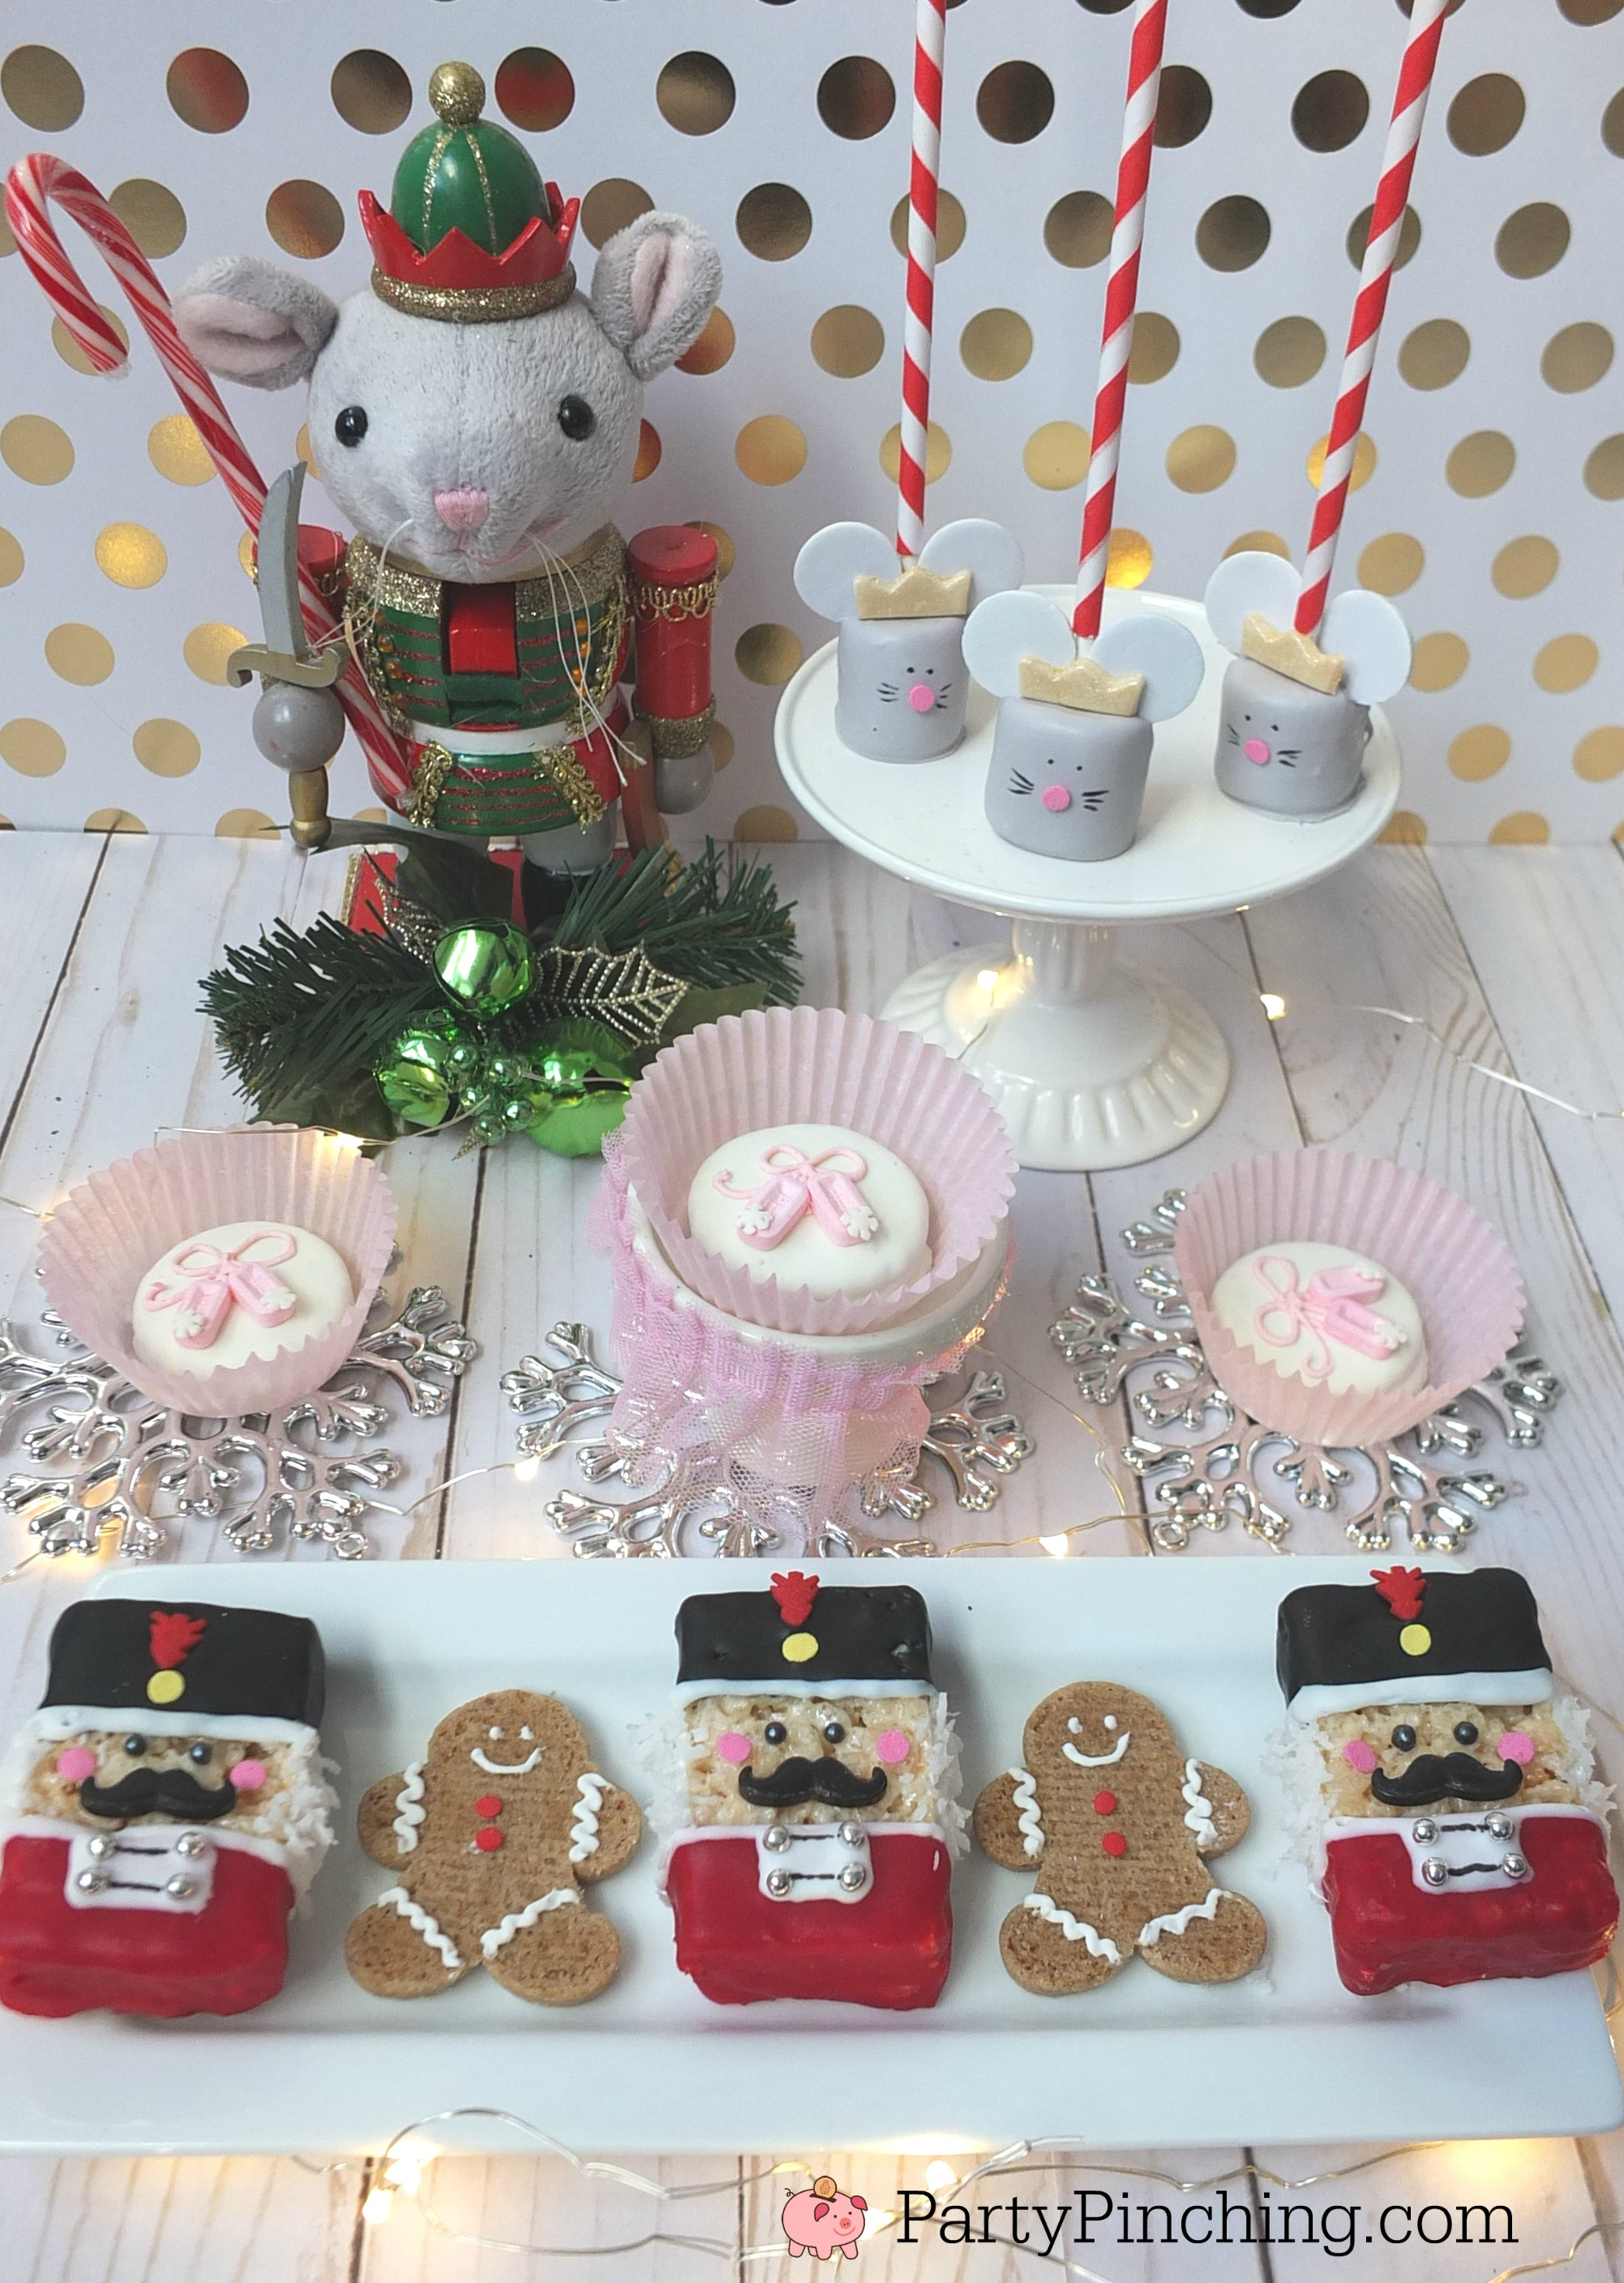 Nutcracker suite party, nutcracker sweets, mouse king ballet slipper toy soldier treats, cute Christmas treats for kids, Nutcracker ballet party ideas